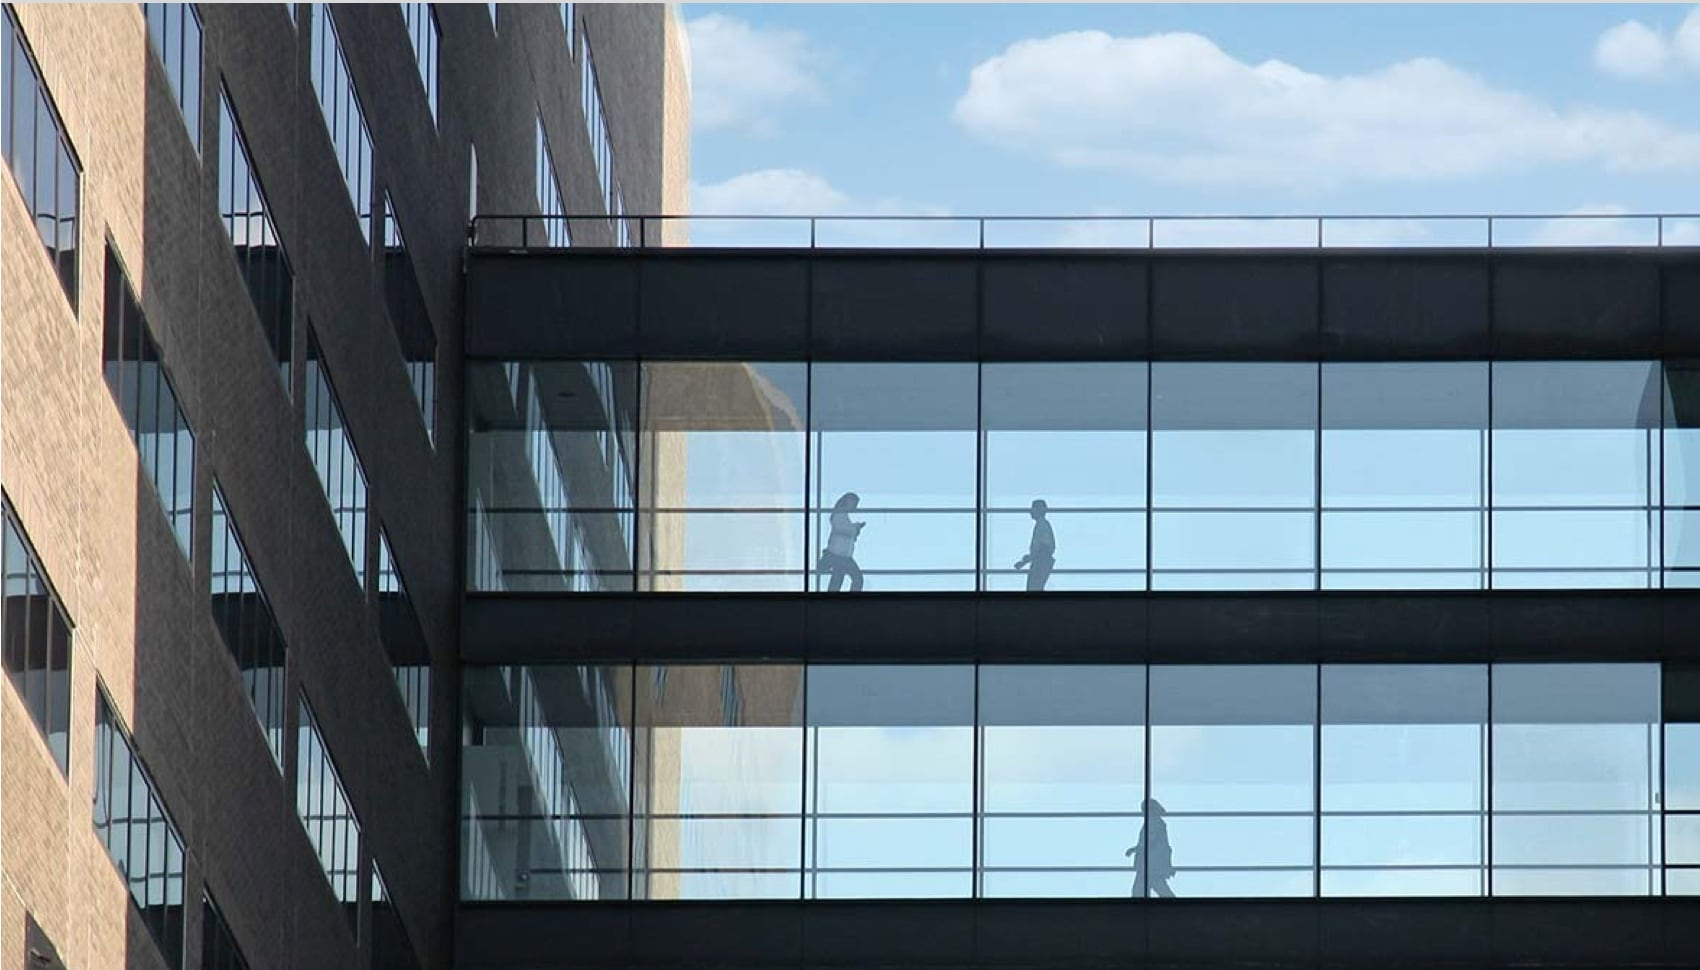 People are in a glass walkway between two modern building